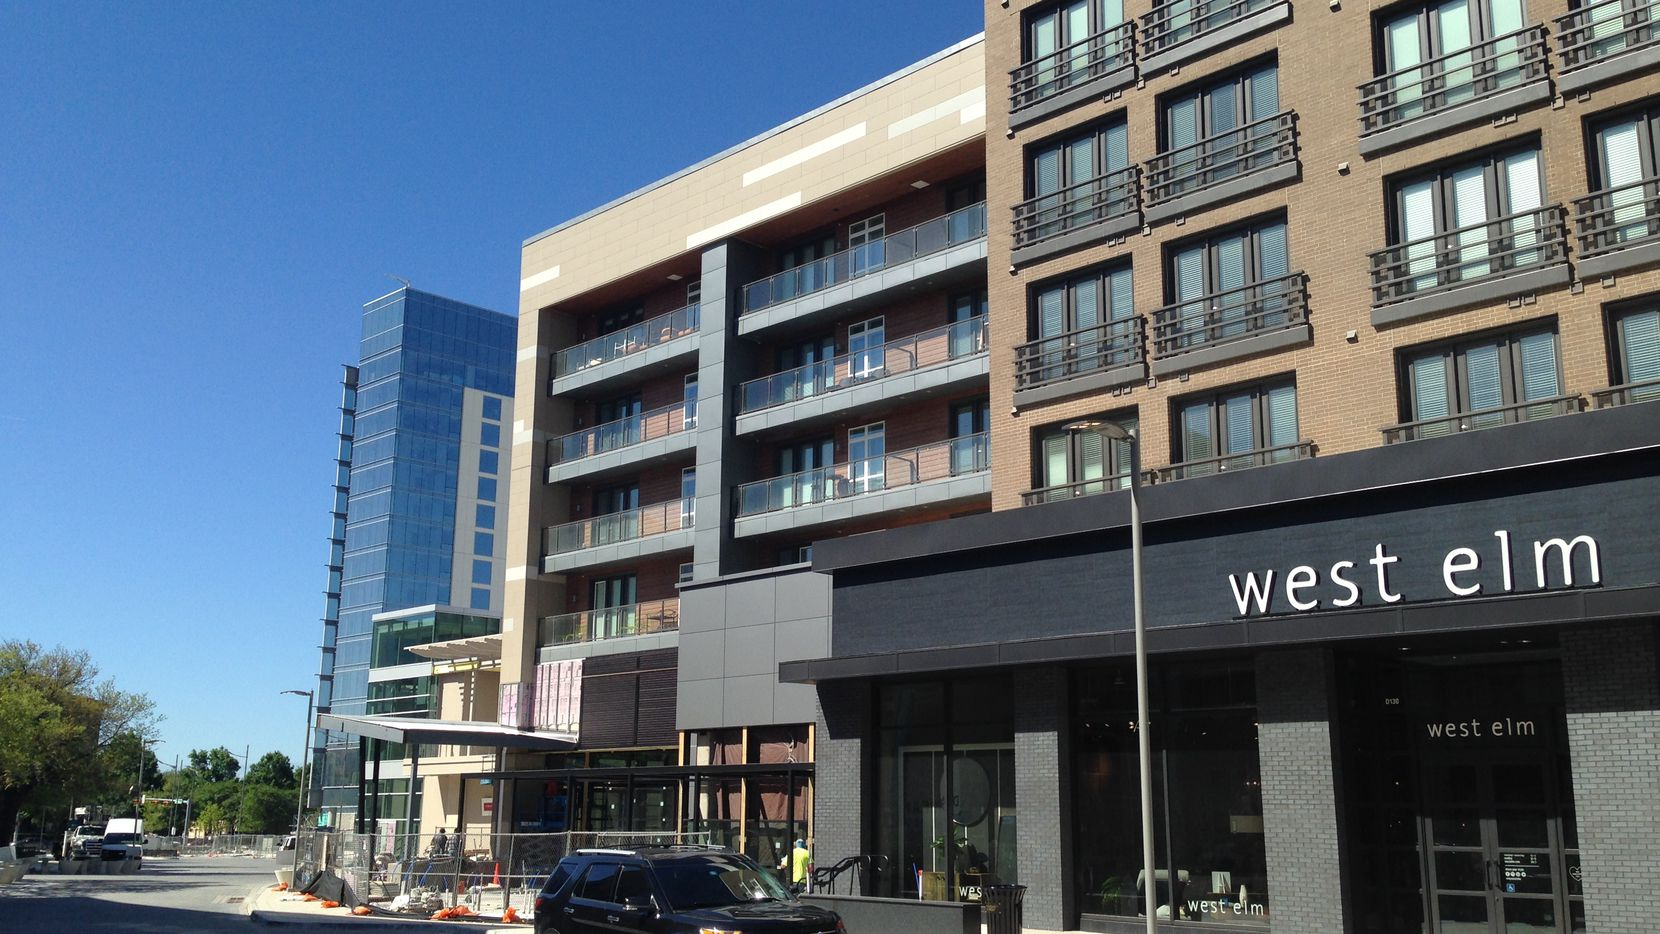 The first retailers are opening in the Legacy West Urban Village in Plano.